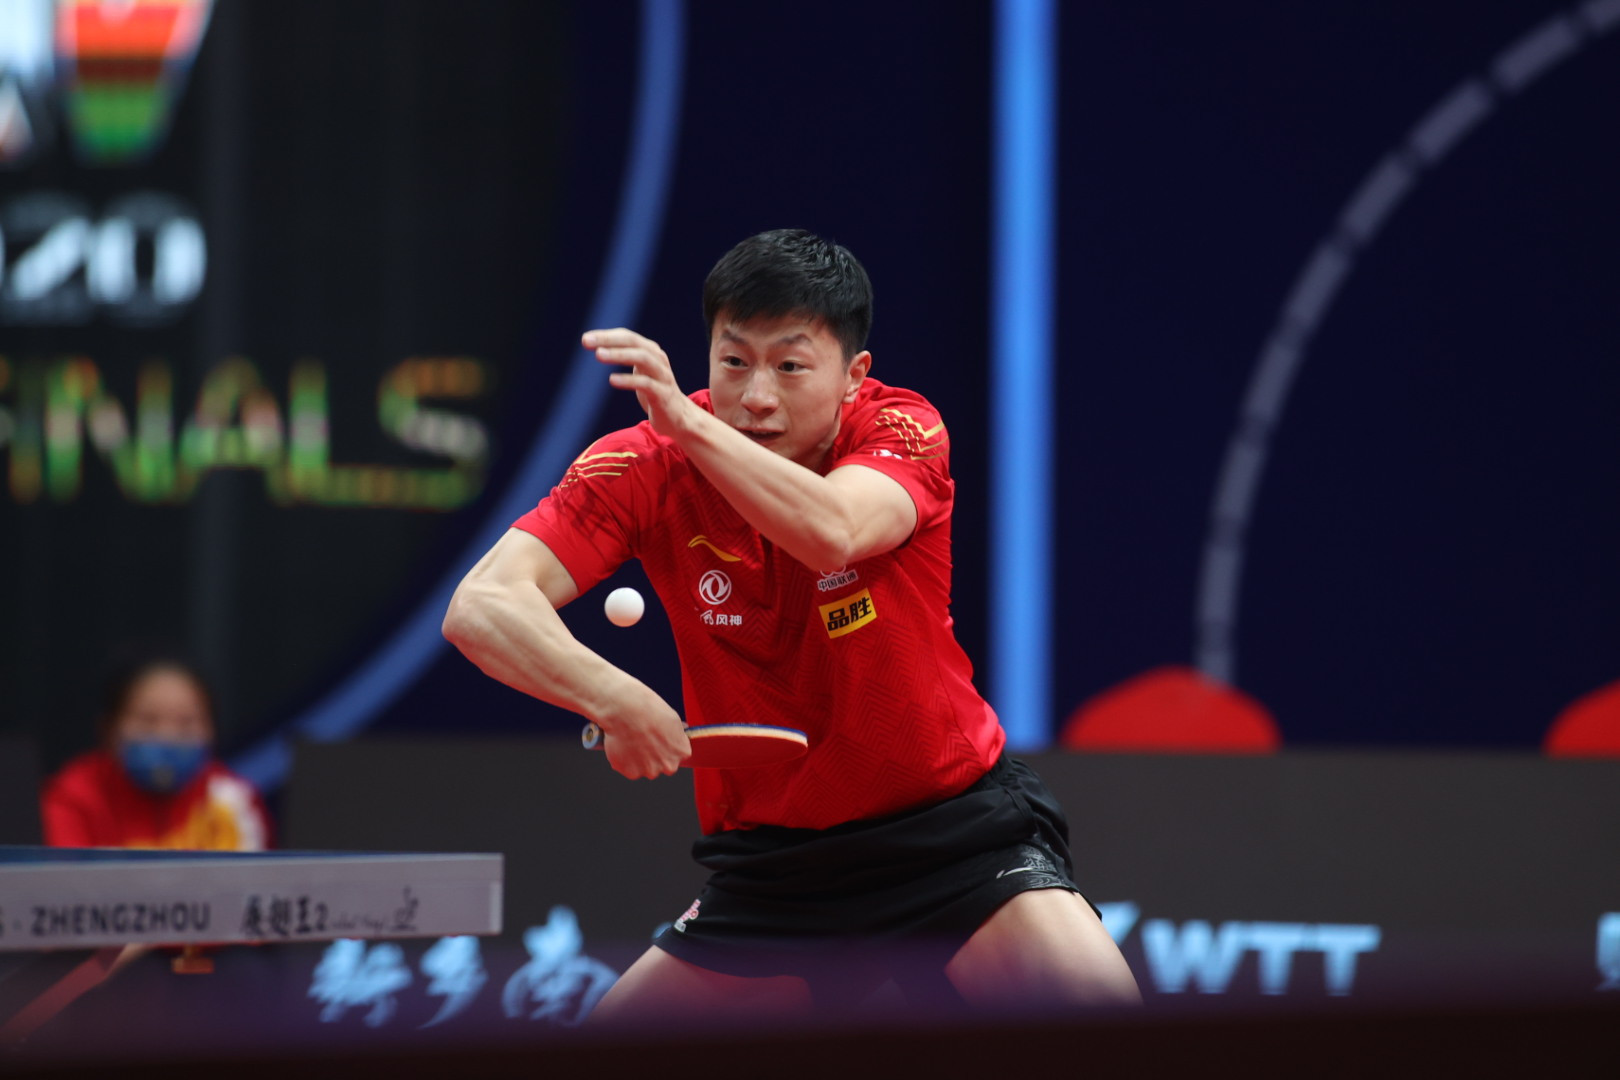 Ma and Fan set for another final as Chen closes in on ITTF Finals history